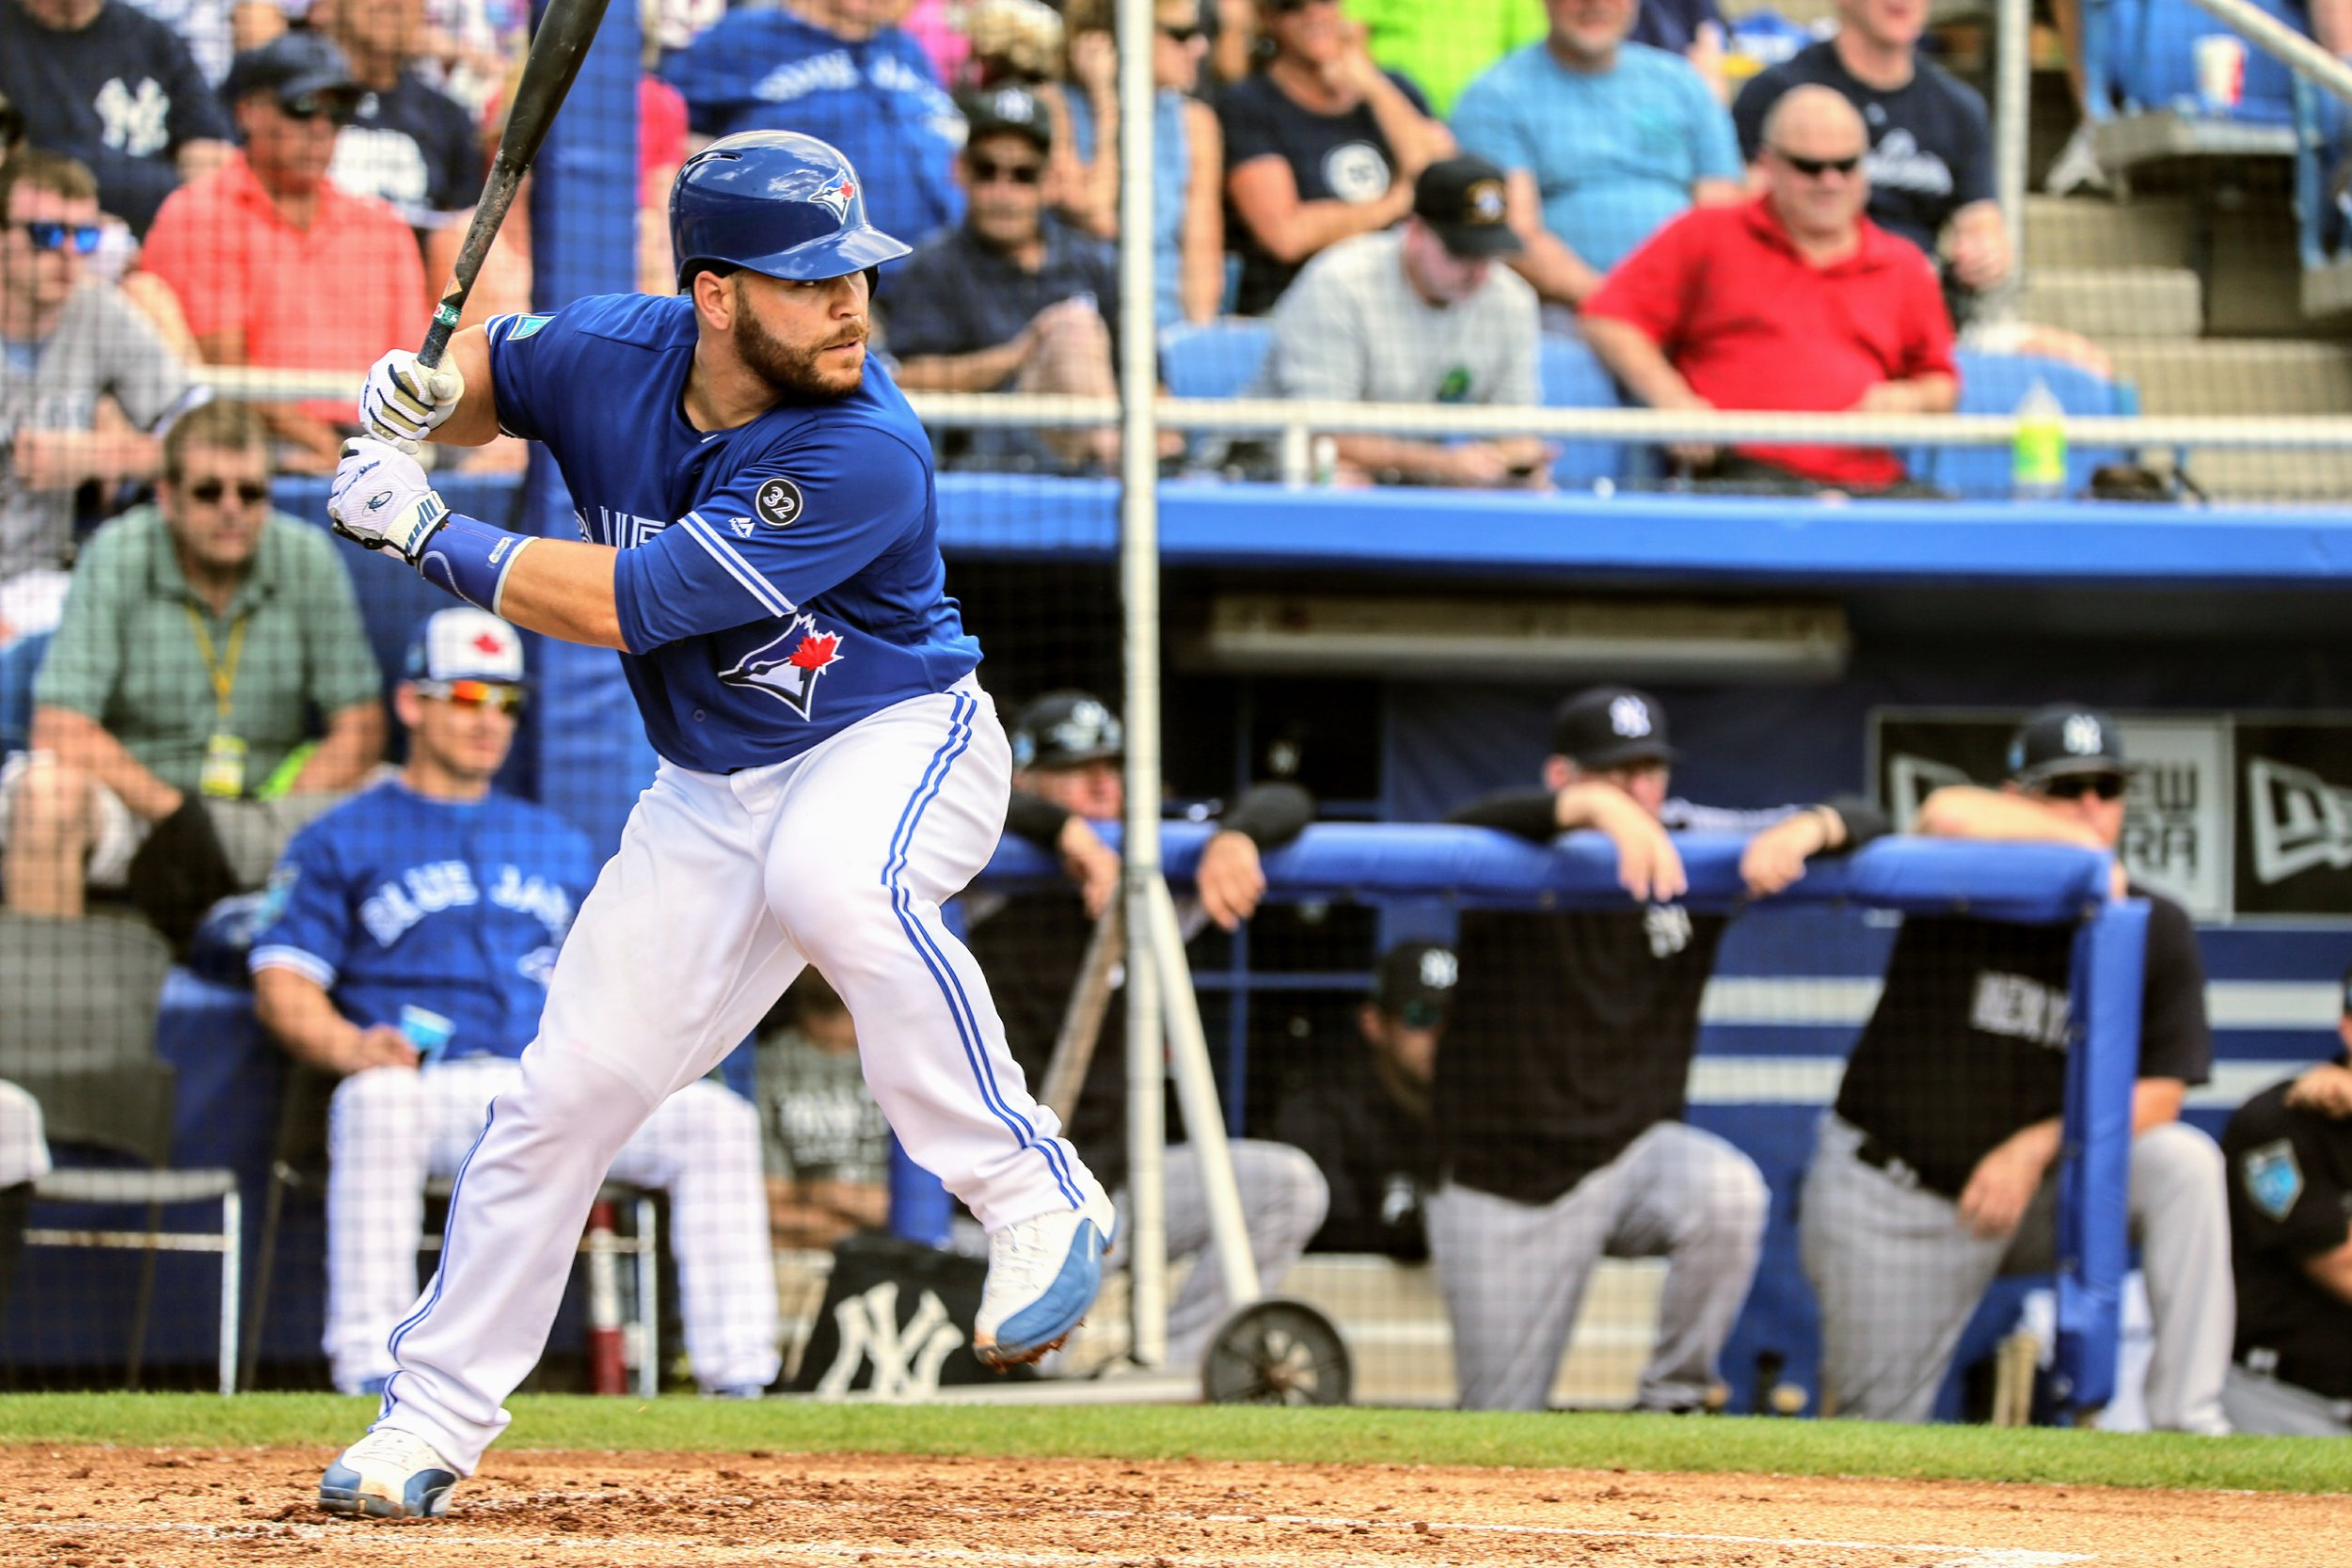 Catcher Russell Martin was traded to the Los Angeles Dodgers on Friday. Photo Credit: Amanda Fewer